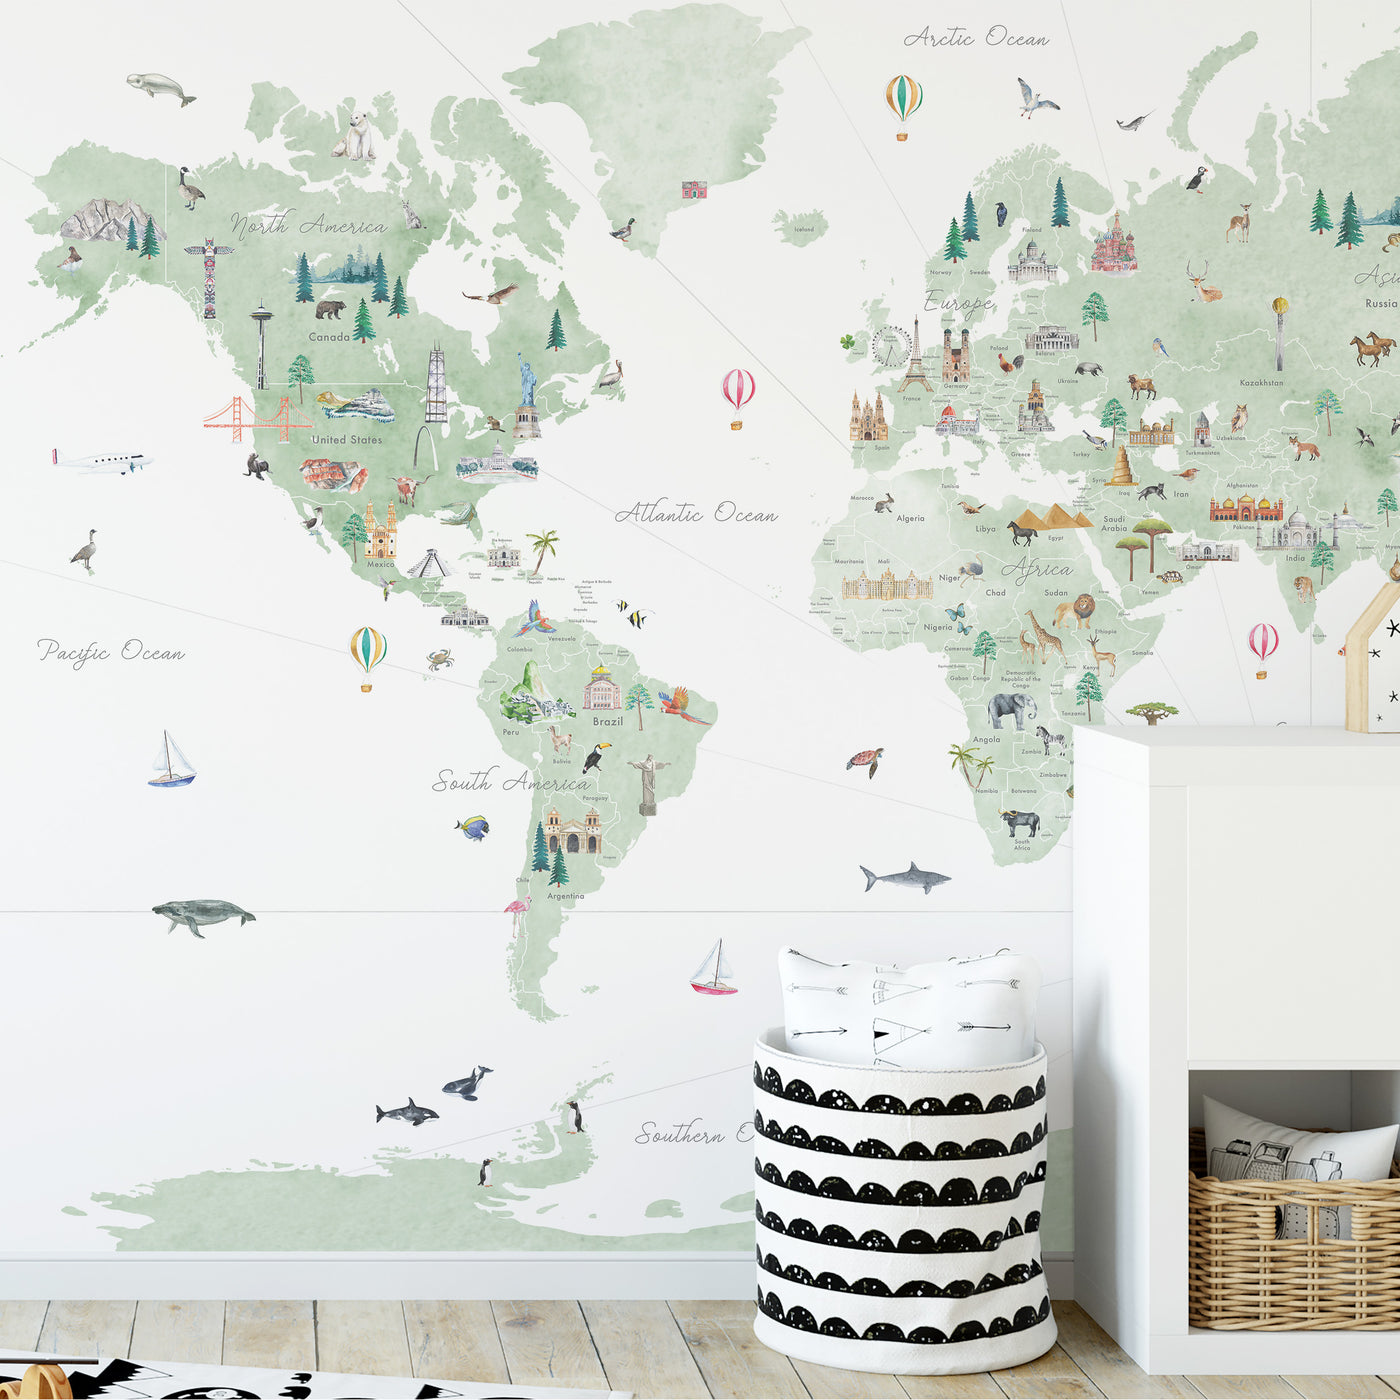 Countries of the World Map Decal